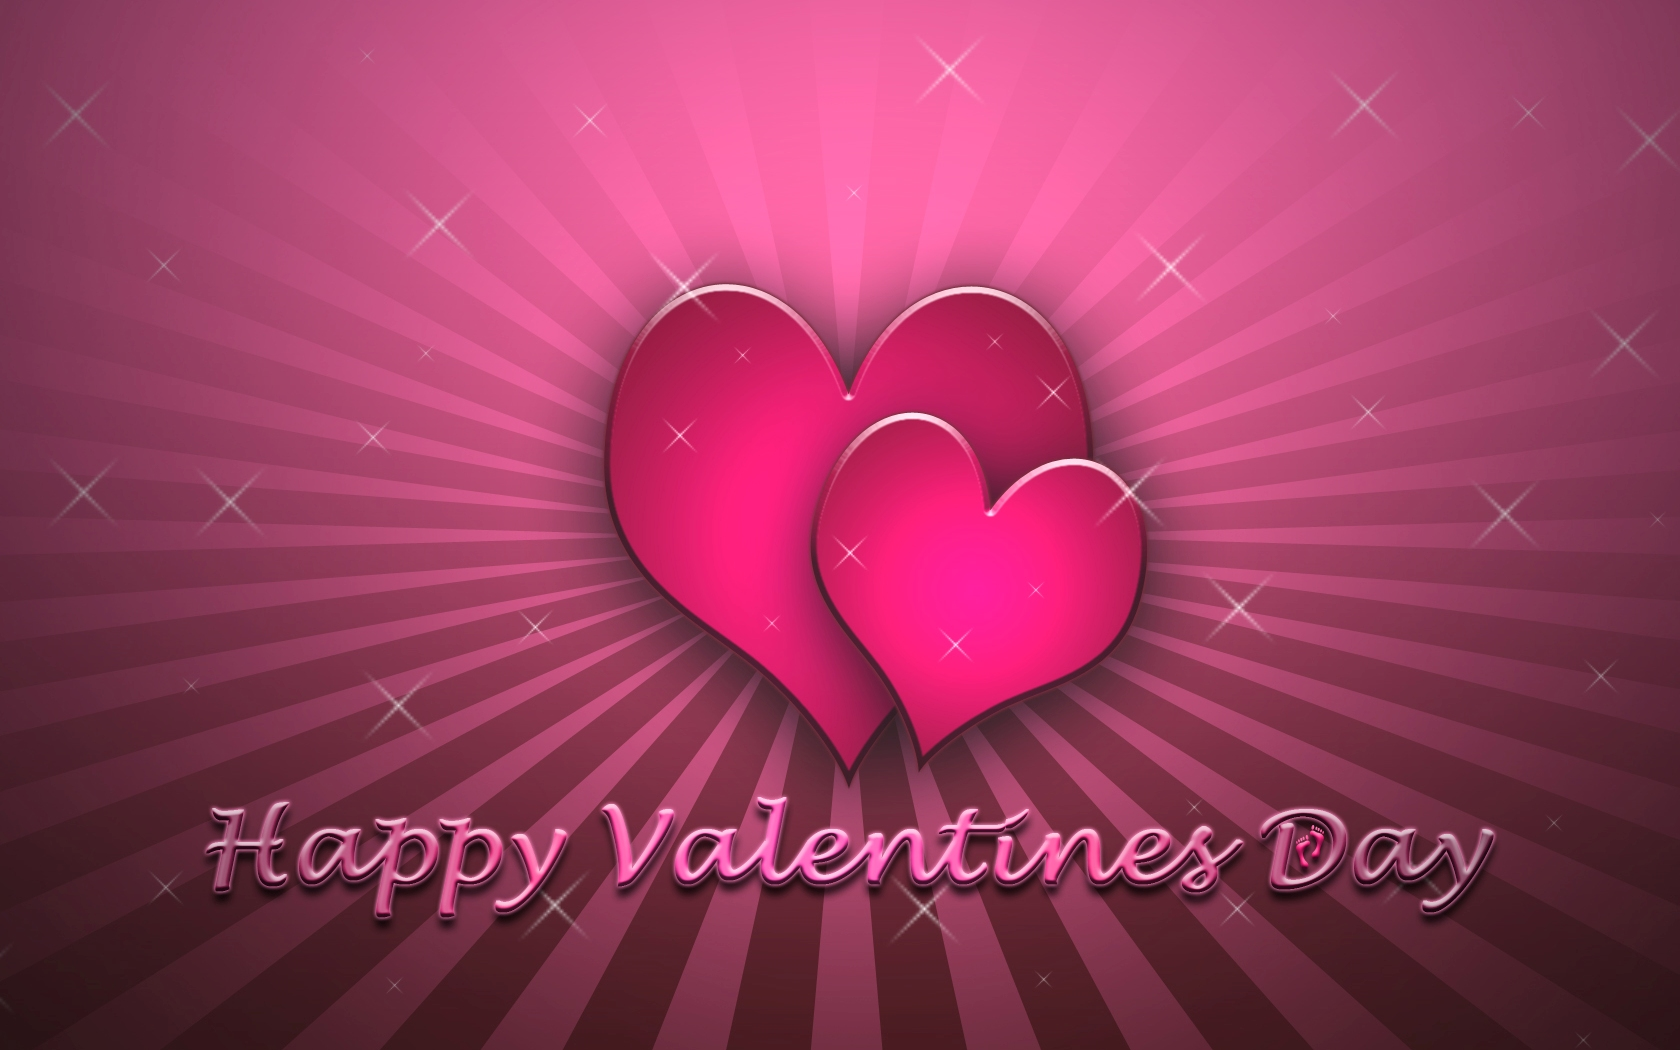 love romantic wallpaper on valentines day free hd